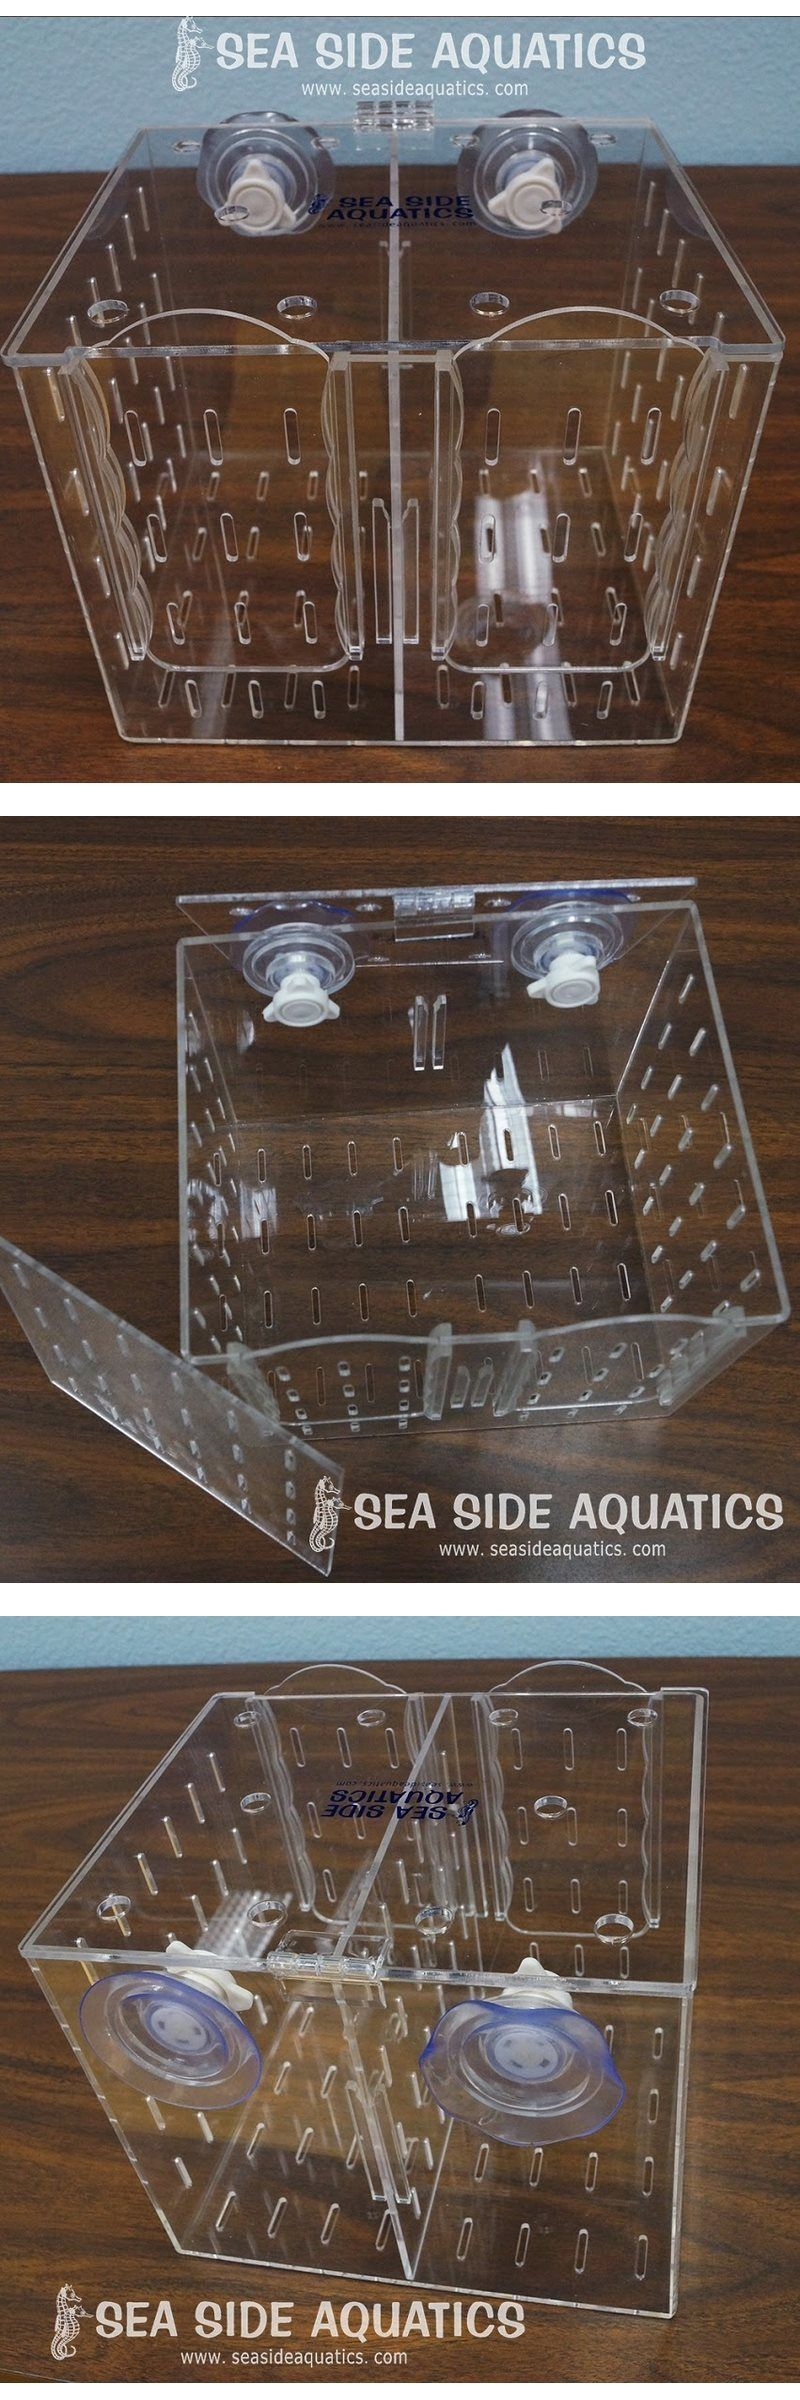 Other Fish and Aquarium Supplies 8444: Sea Side Aquatics Acclimation Box Rf200 -> BUY IT NOW ONLY: $44.99 on eBay!